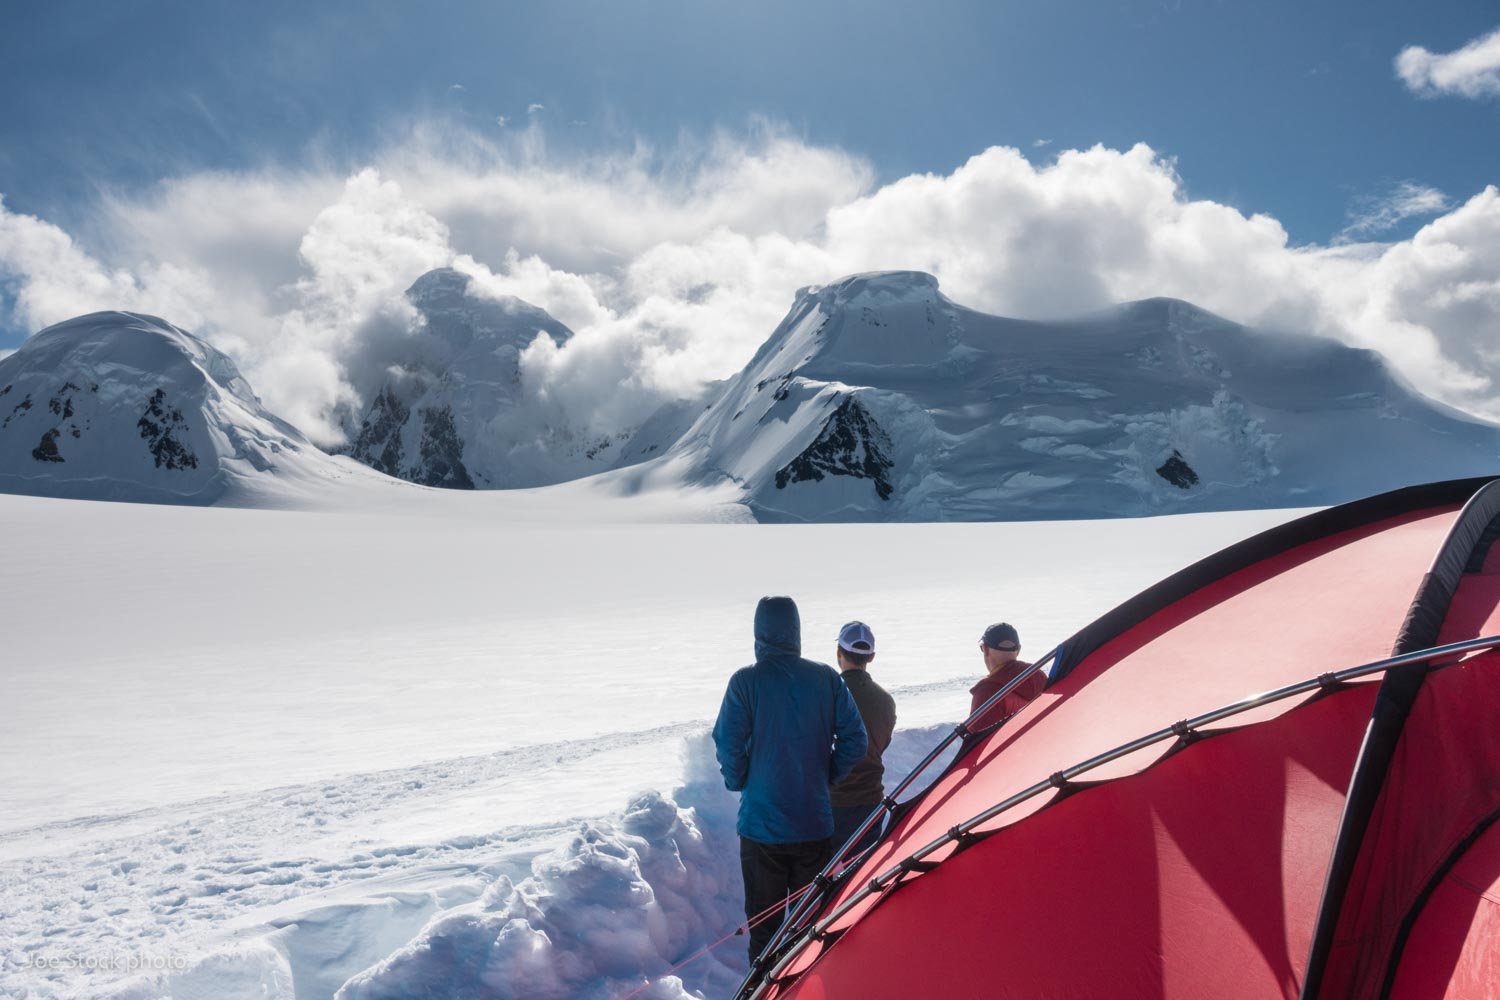 Our camp was perched on a 7,500-foot bench of the Yentna Glacier, surrounded by peaks including the mighty Mount Russell (11,670 feet) at the head of the valley. Denali ranger Tucker Chenoweth calls this location Island in the Skye. His daughter is named Skye. It did feel like an island. There's no easy escape from this island enclosed by rock walls and icefalls.  We chose this place with the help of Steve Gruhn in Anchorage. Steve's our man for adventure. Our plan A idea came from Steve, as well as our plan B.  Weather during the trip was mostly light winds and clear skies. Good weather in this region typically comes with north wind, which flows hundreds of miles across the tundra, then hits the mountains where we camped. The air rises and condenses on the summits around us. It's a rare day without clouds lurking on Mount Russell. Pilot Paul Roderick warned us about the weather in the area. Paul knows.